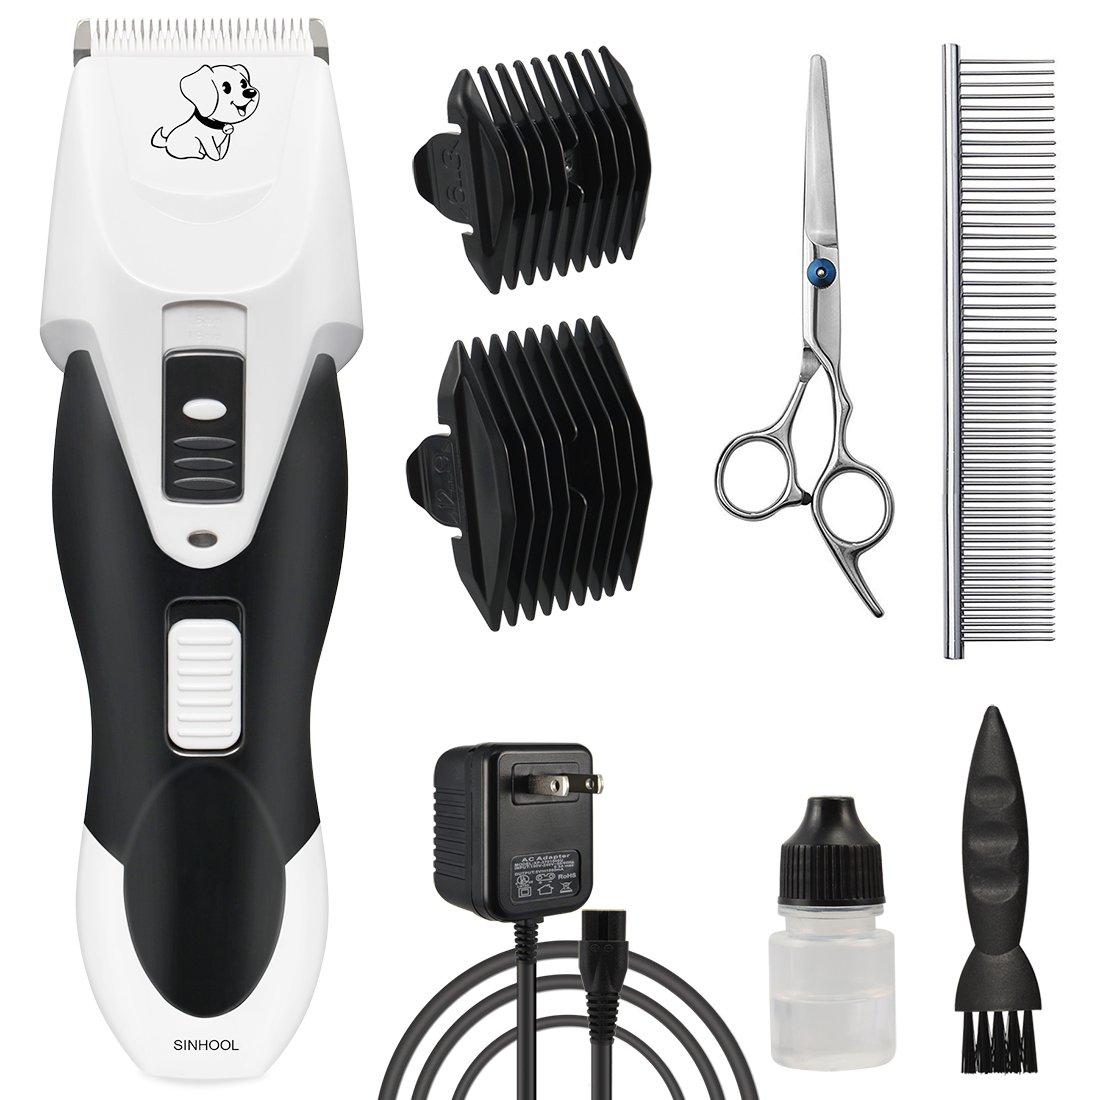 Pet Grooming Clippers Professional Rechargeable Cordless Silent Dog Grooming Clippers Heavy Duty, Electric Trimmer for Dogs and Cats, Pet Grooming Kit for Other Animal with 2 Comb Guides